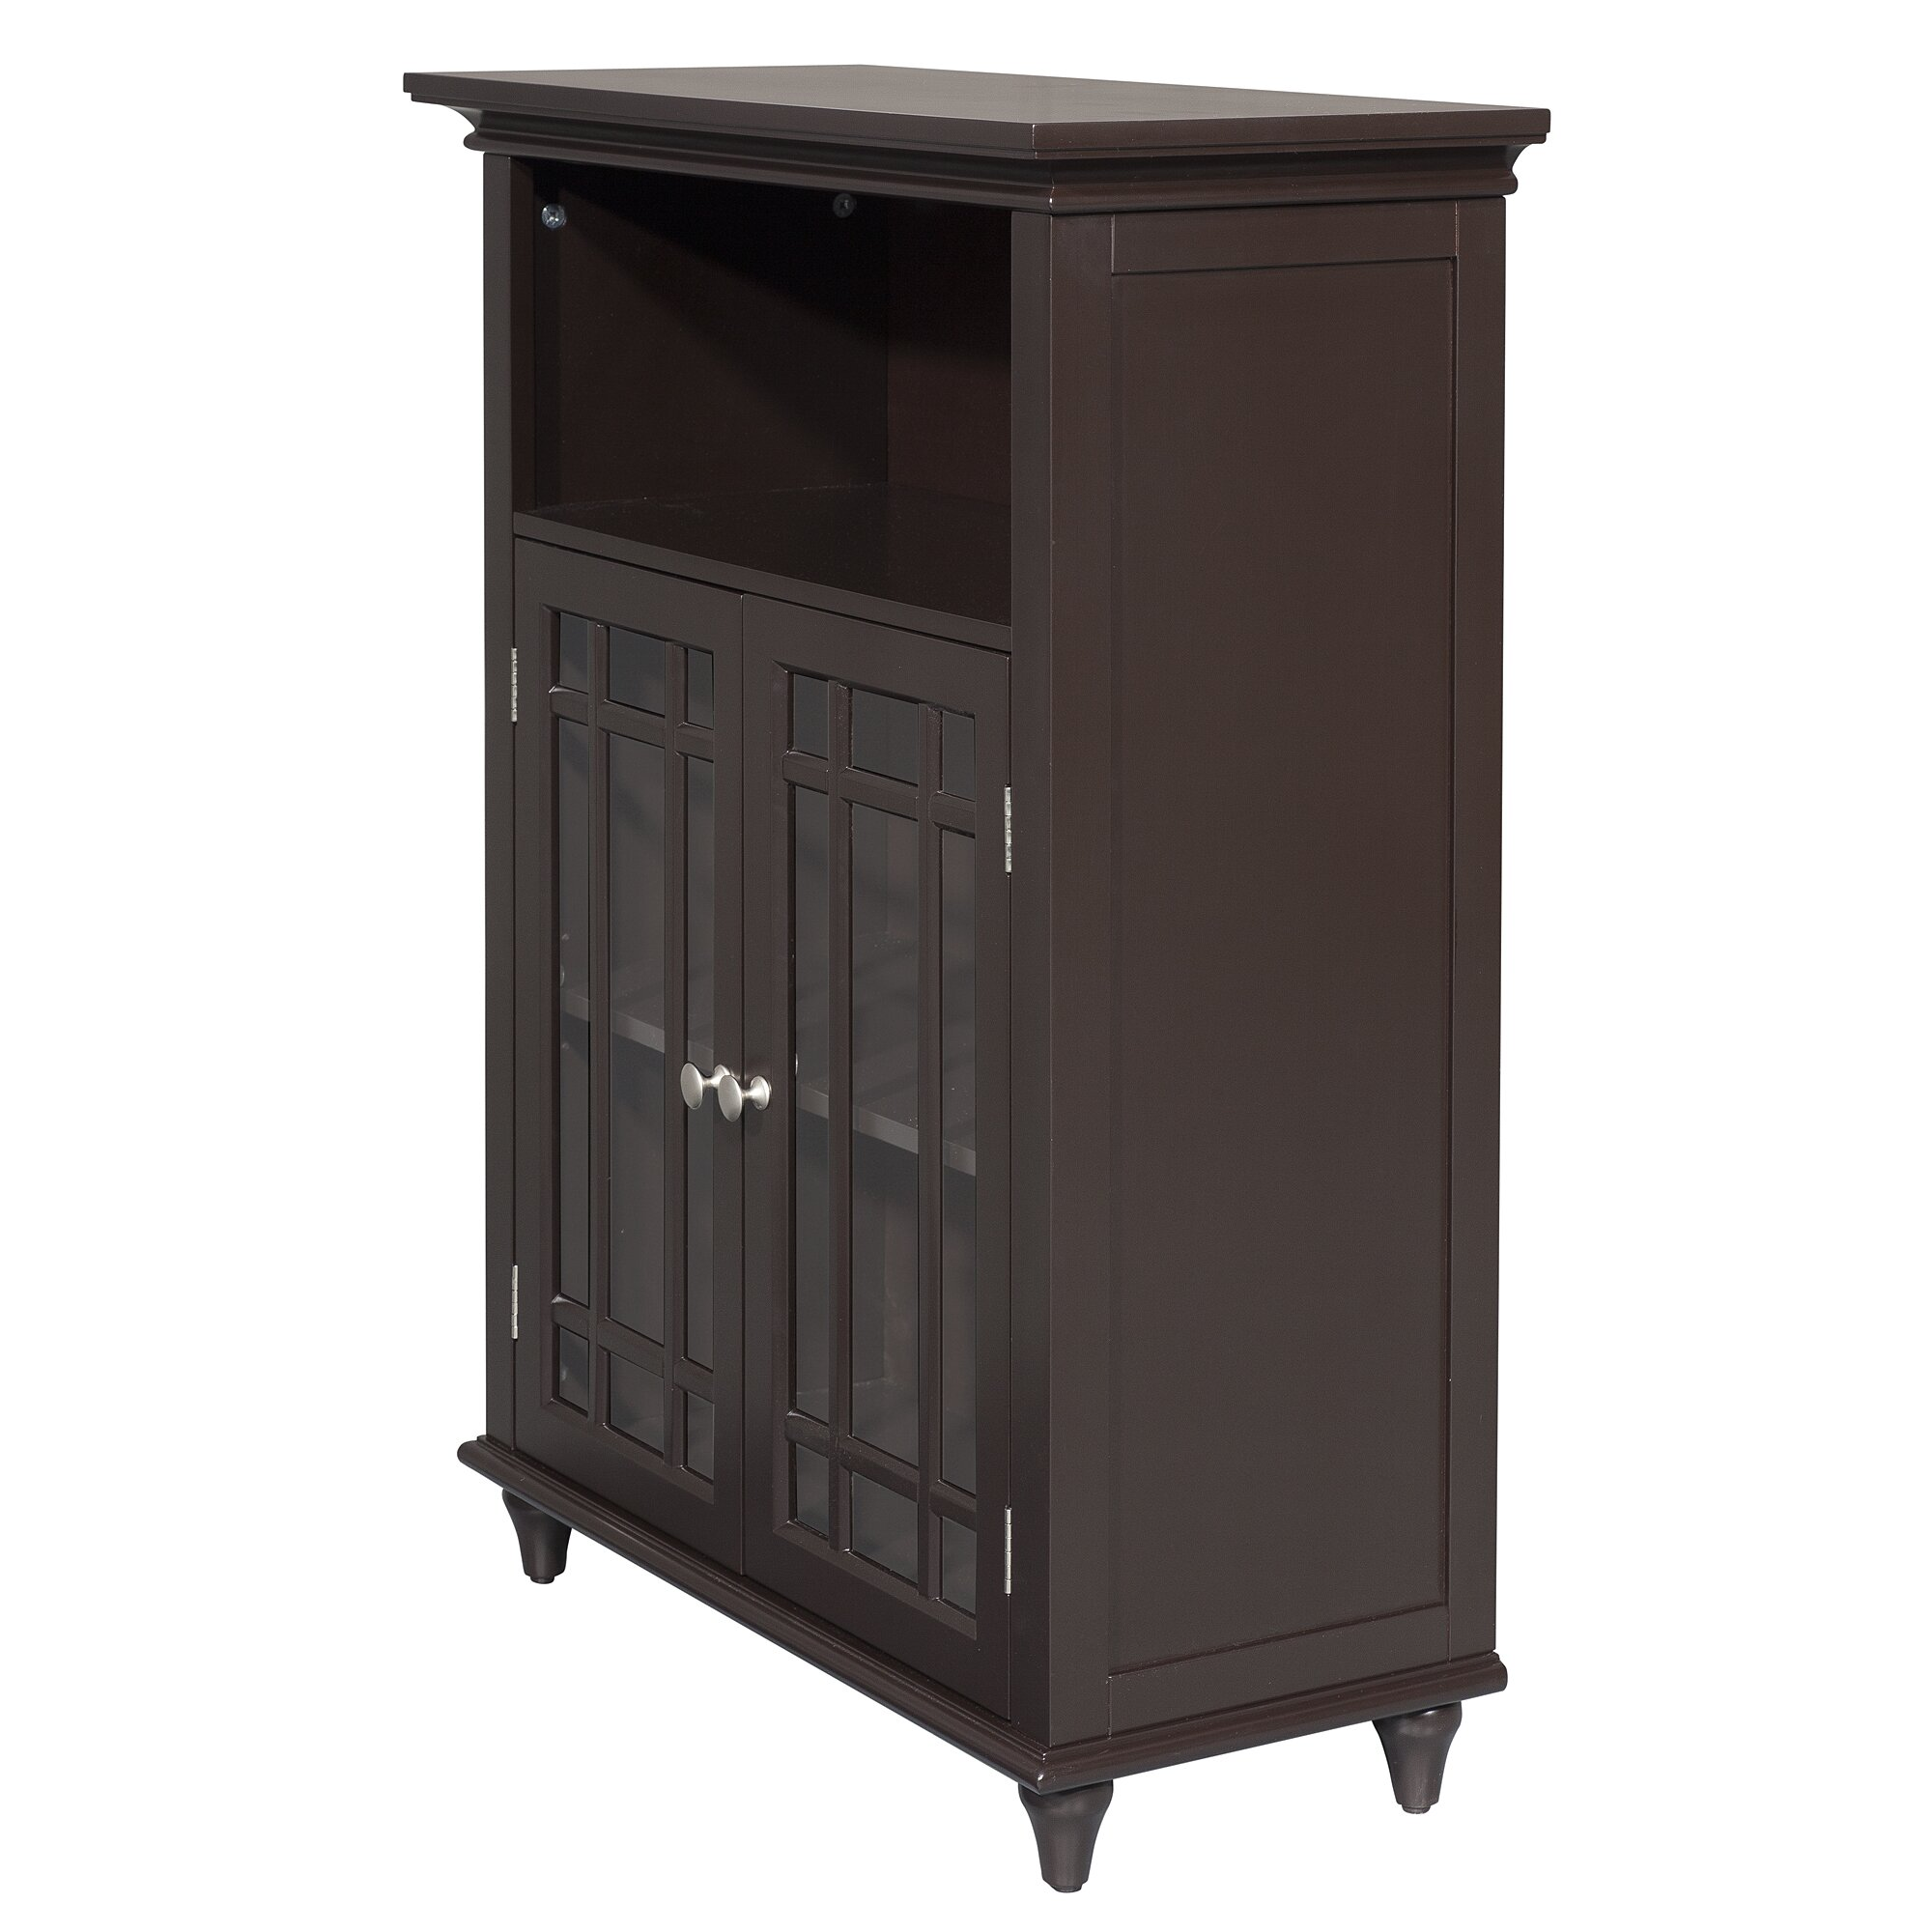 Charlton home elba 26 5 x 34 free standing cabinet for Storage charlton